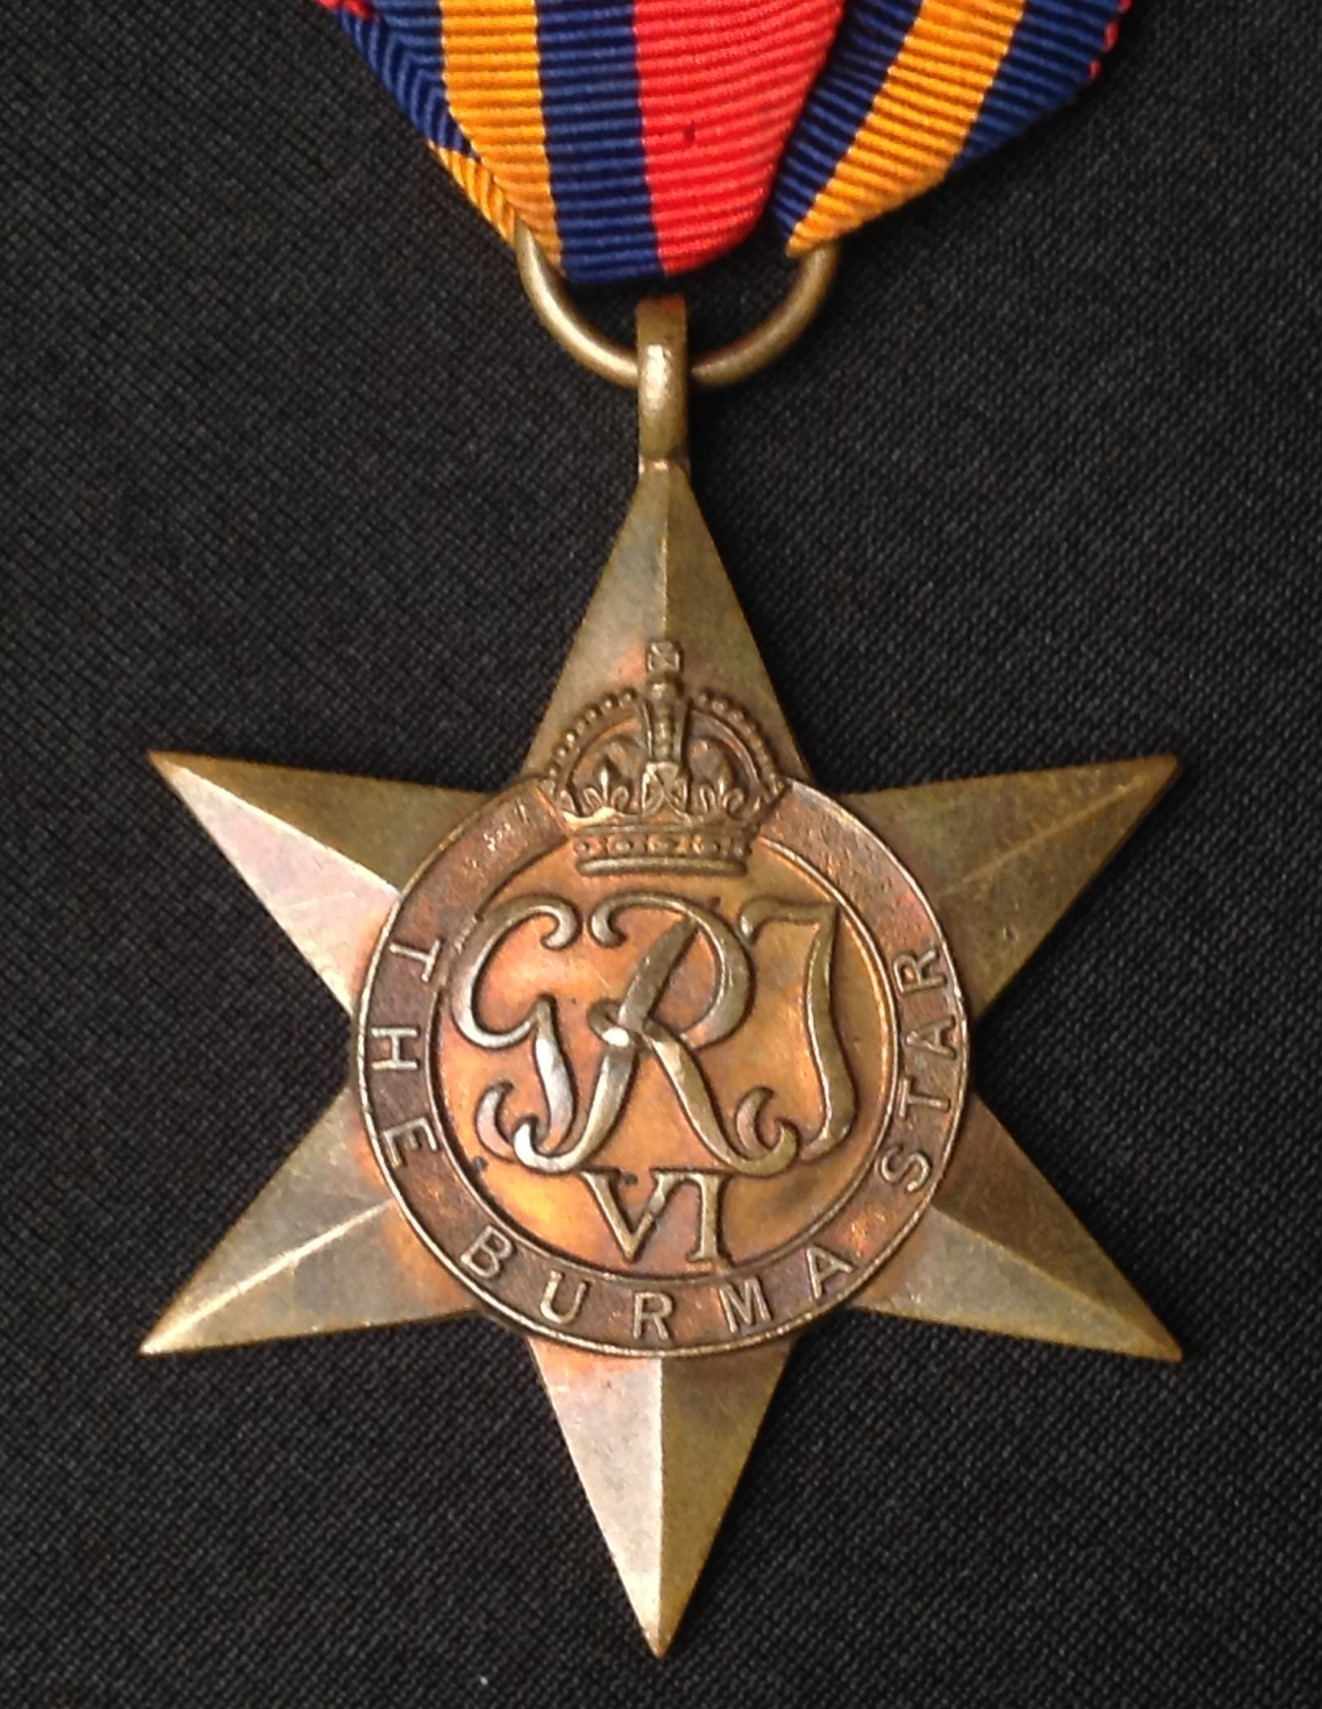 WW2 British Burma Star, Defence Medal and War Medal. All complete with original ribbons. - Image 2 of 3